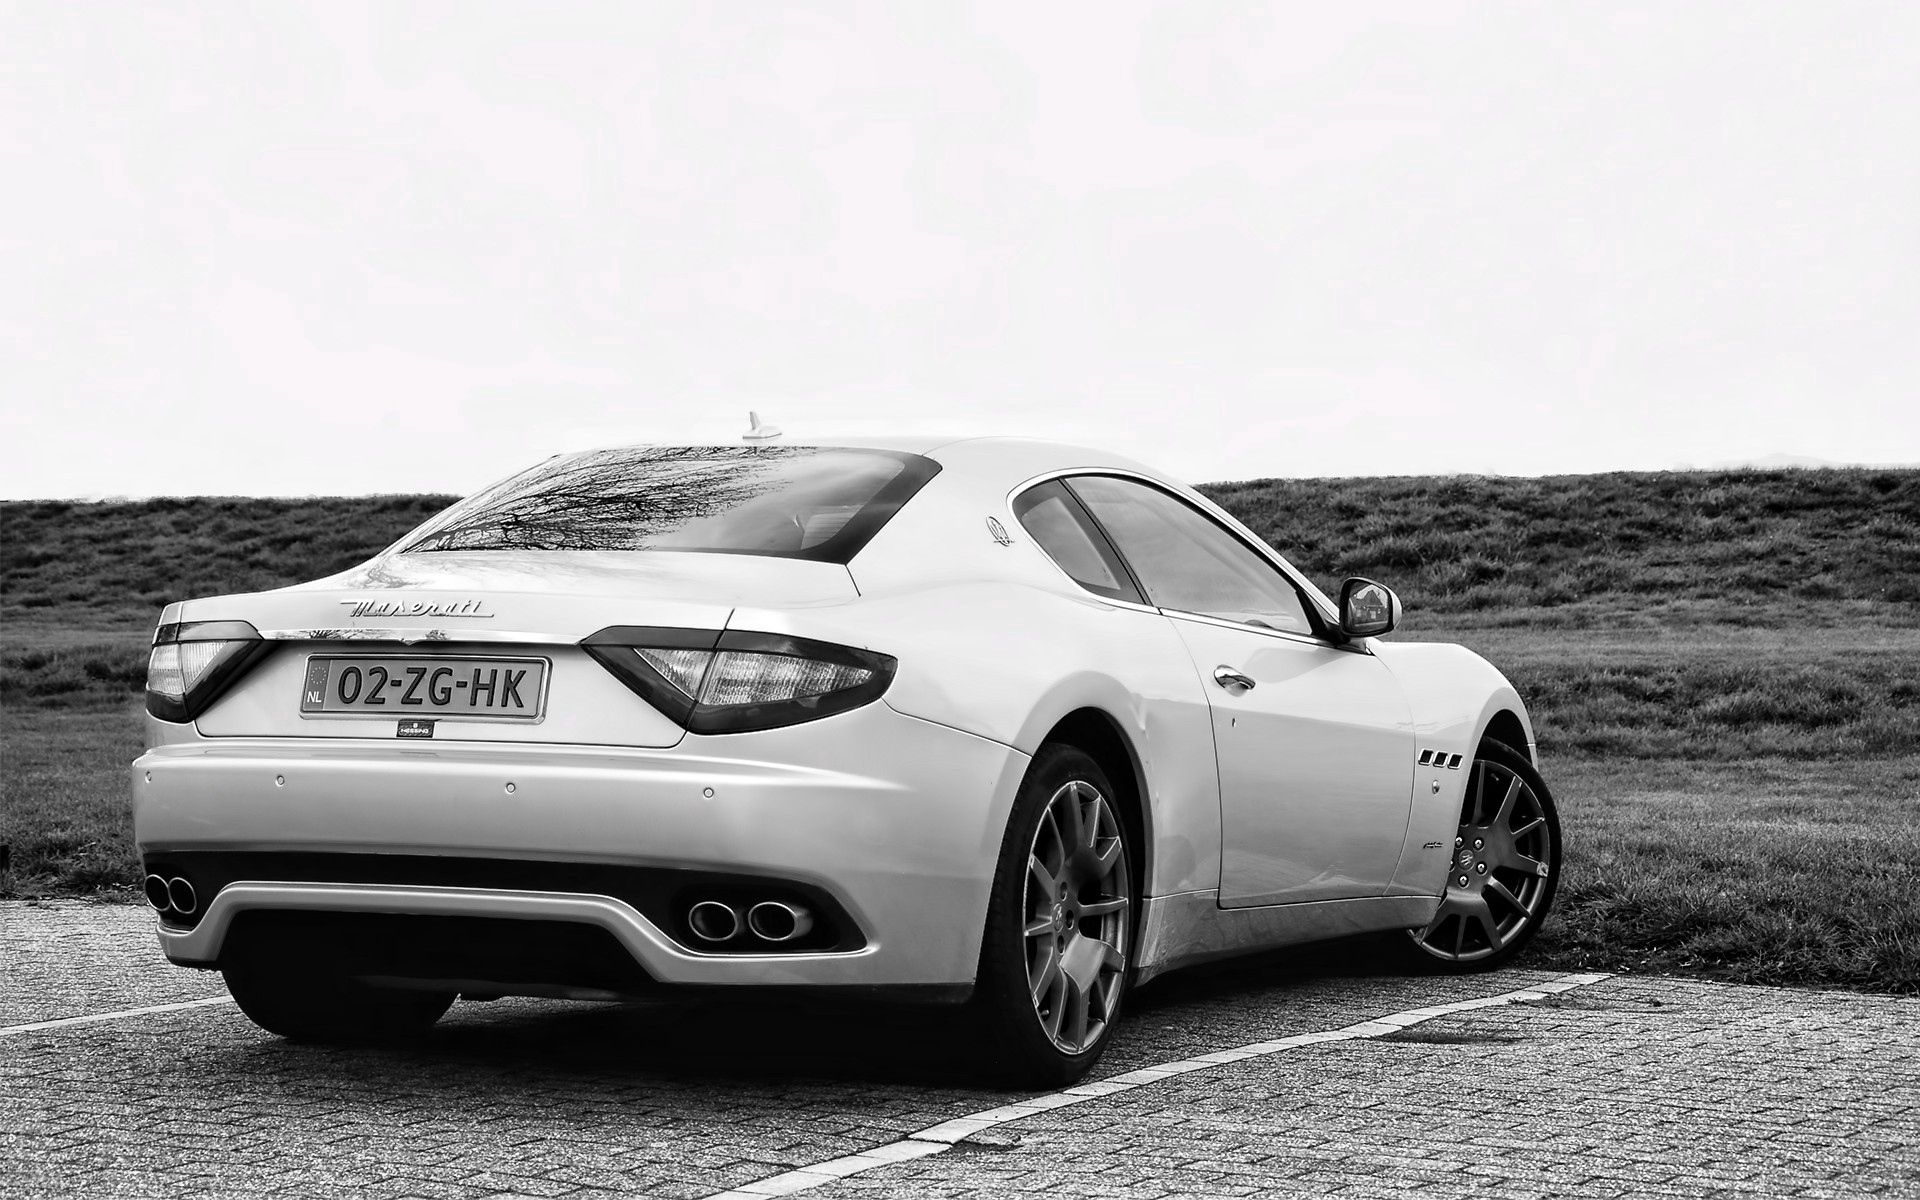 107261 download wallpaper Cars, Maserati, Back View, Rear View, Street screensavers and pictures for free